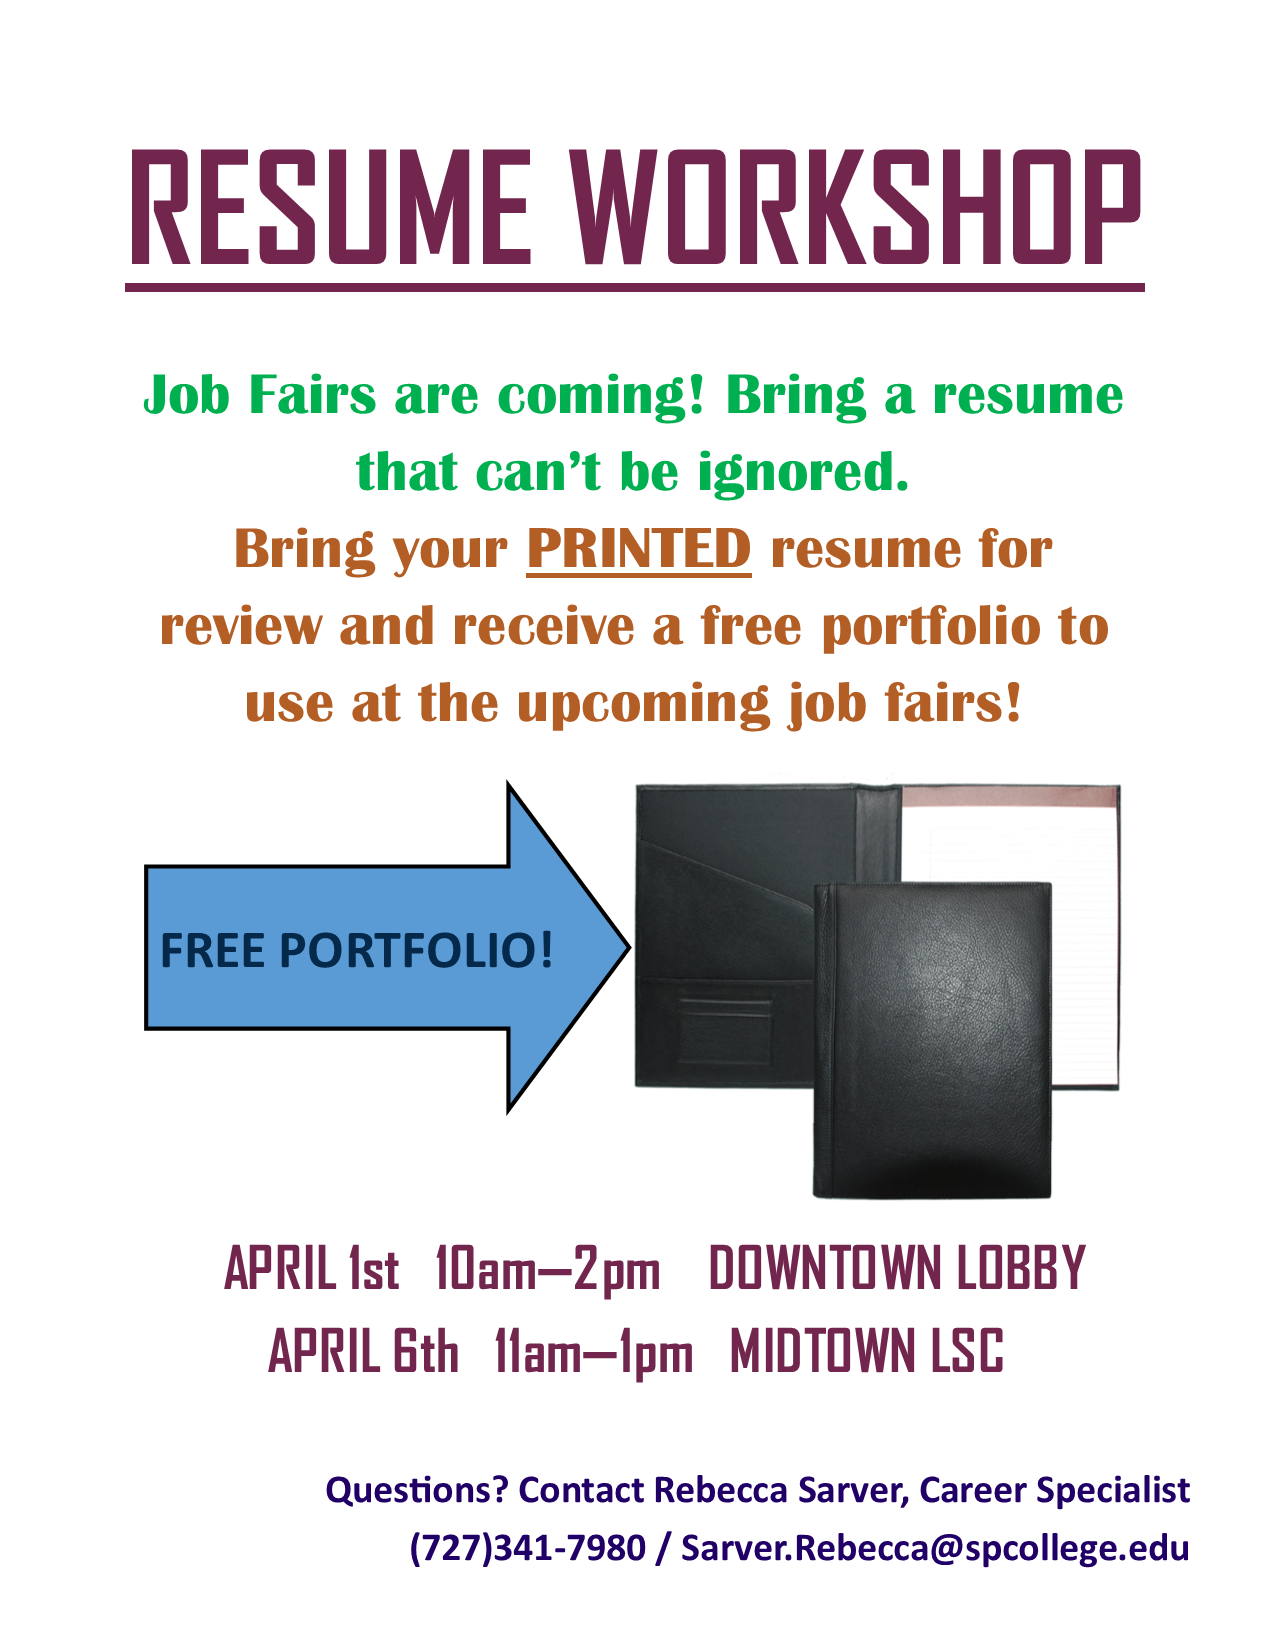 Resume Workshops are coming soon to DT MT Careers Internships